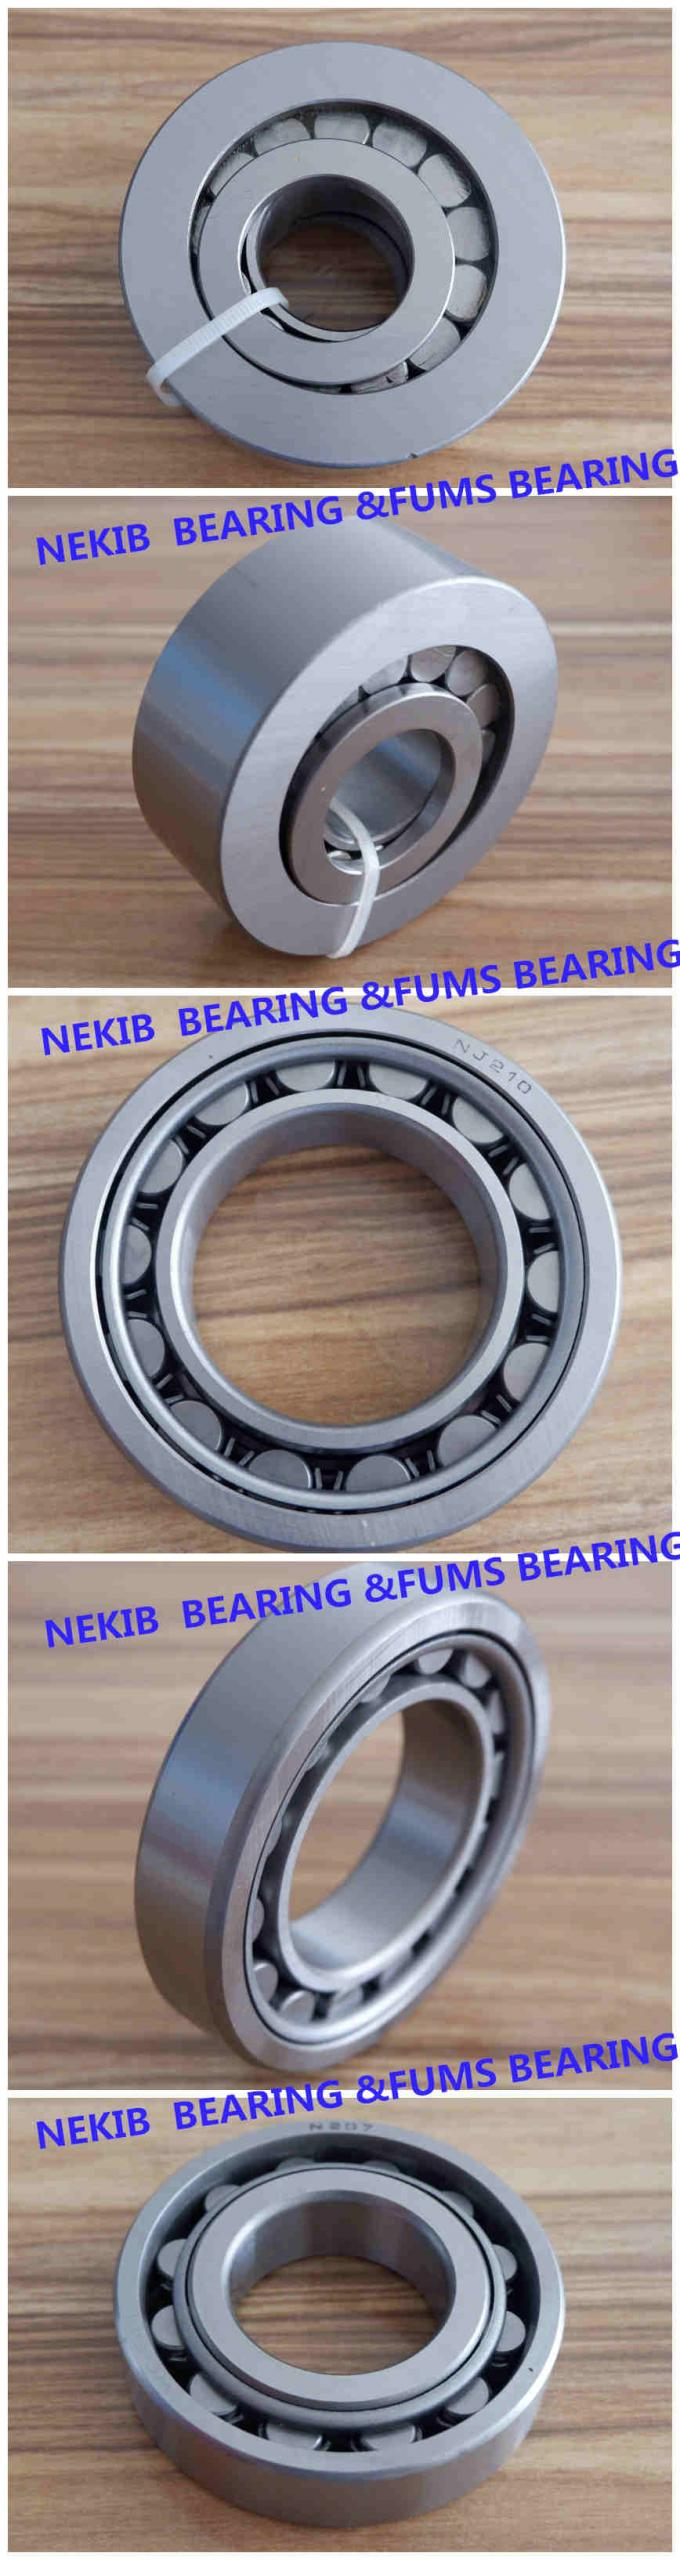 Low Noise Cylindrical Roller Bearing NJ 2207 Chrome Steel For Machinery 1